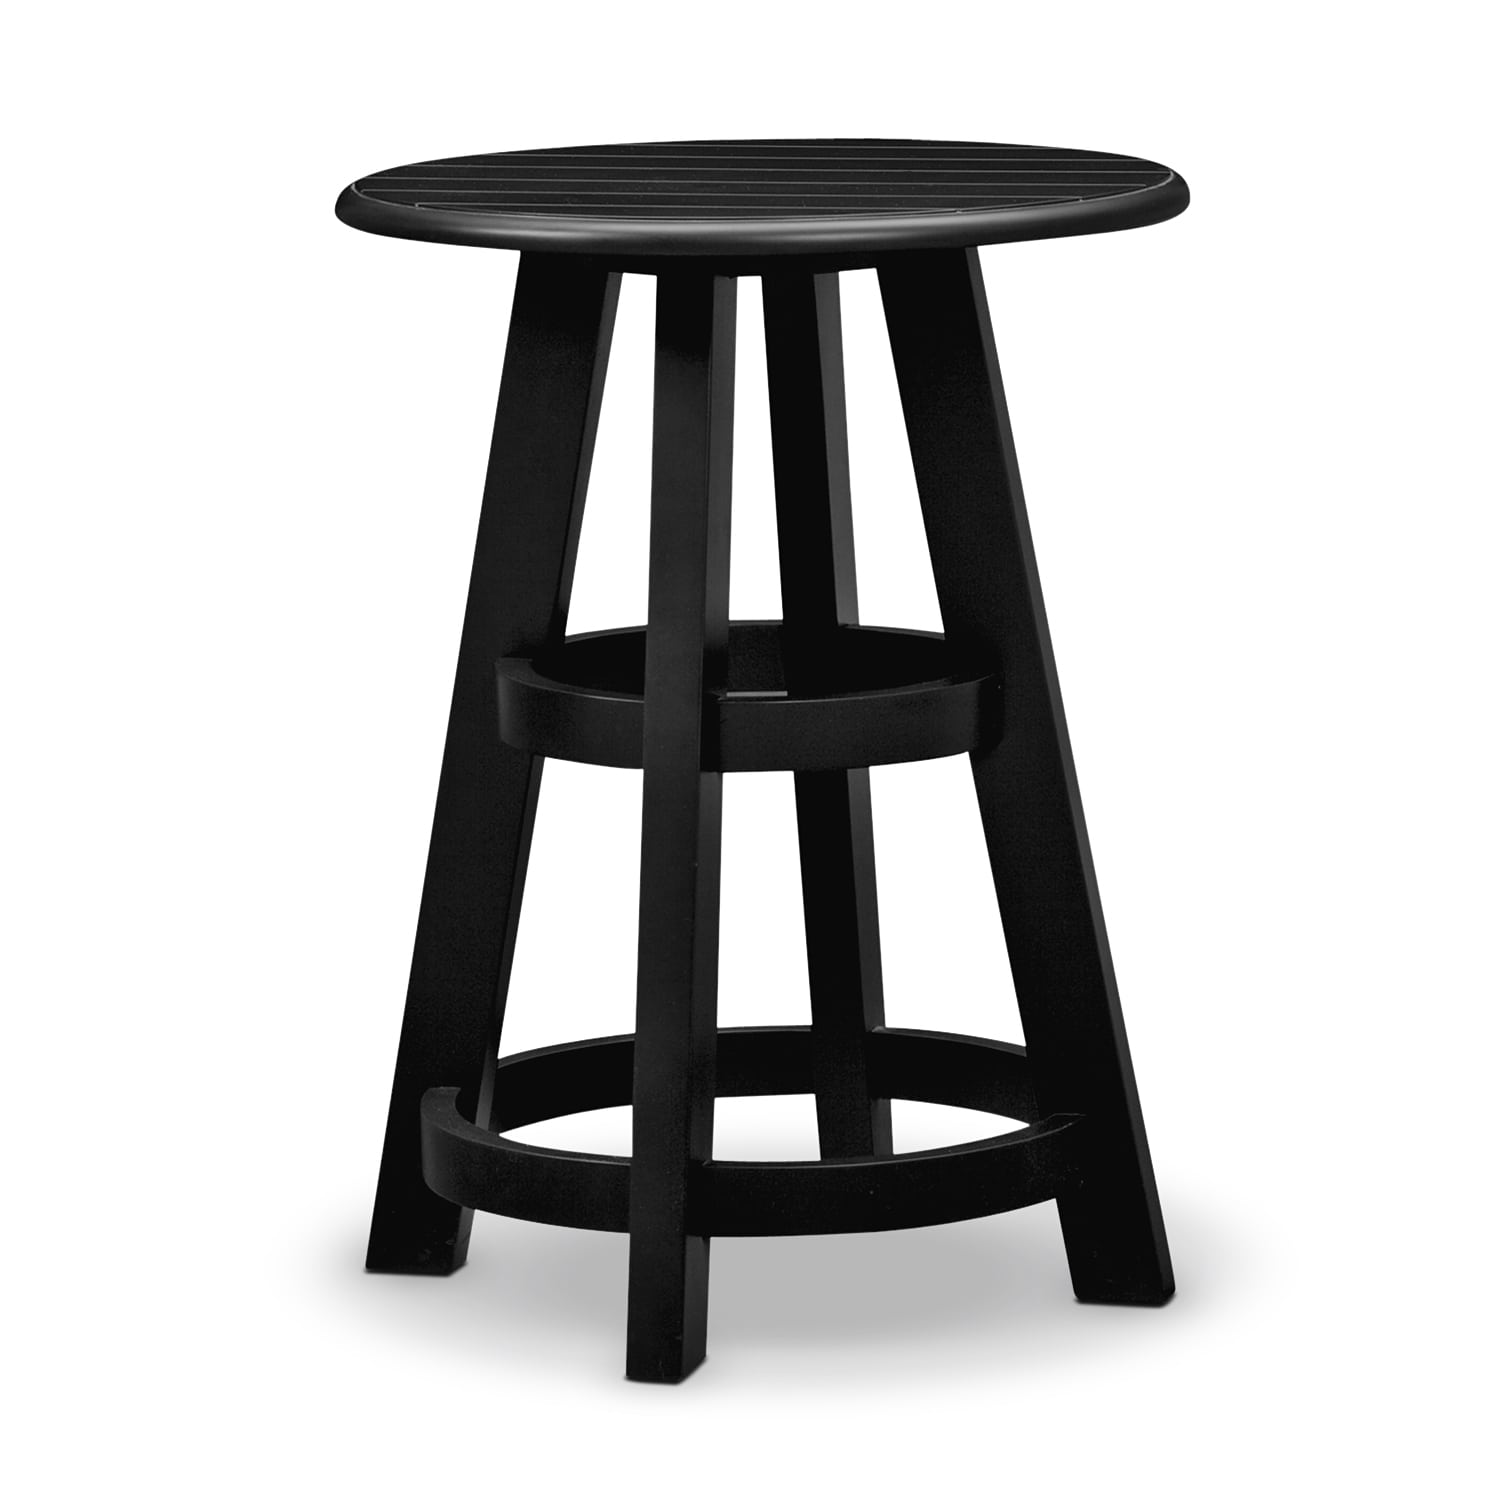 Was $129.99 Today $103.99 Plantation Cove Coastal Chairside Table   Black